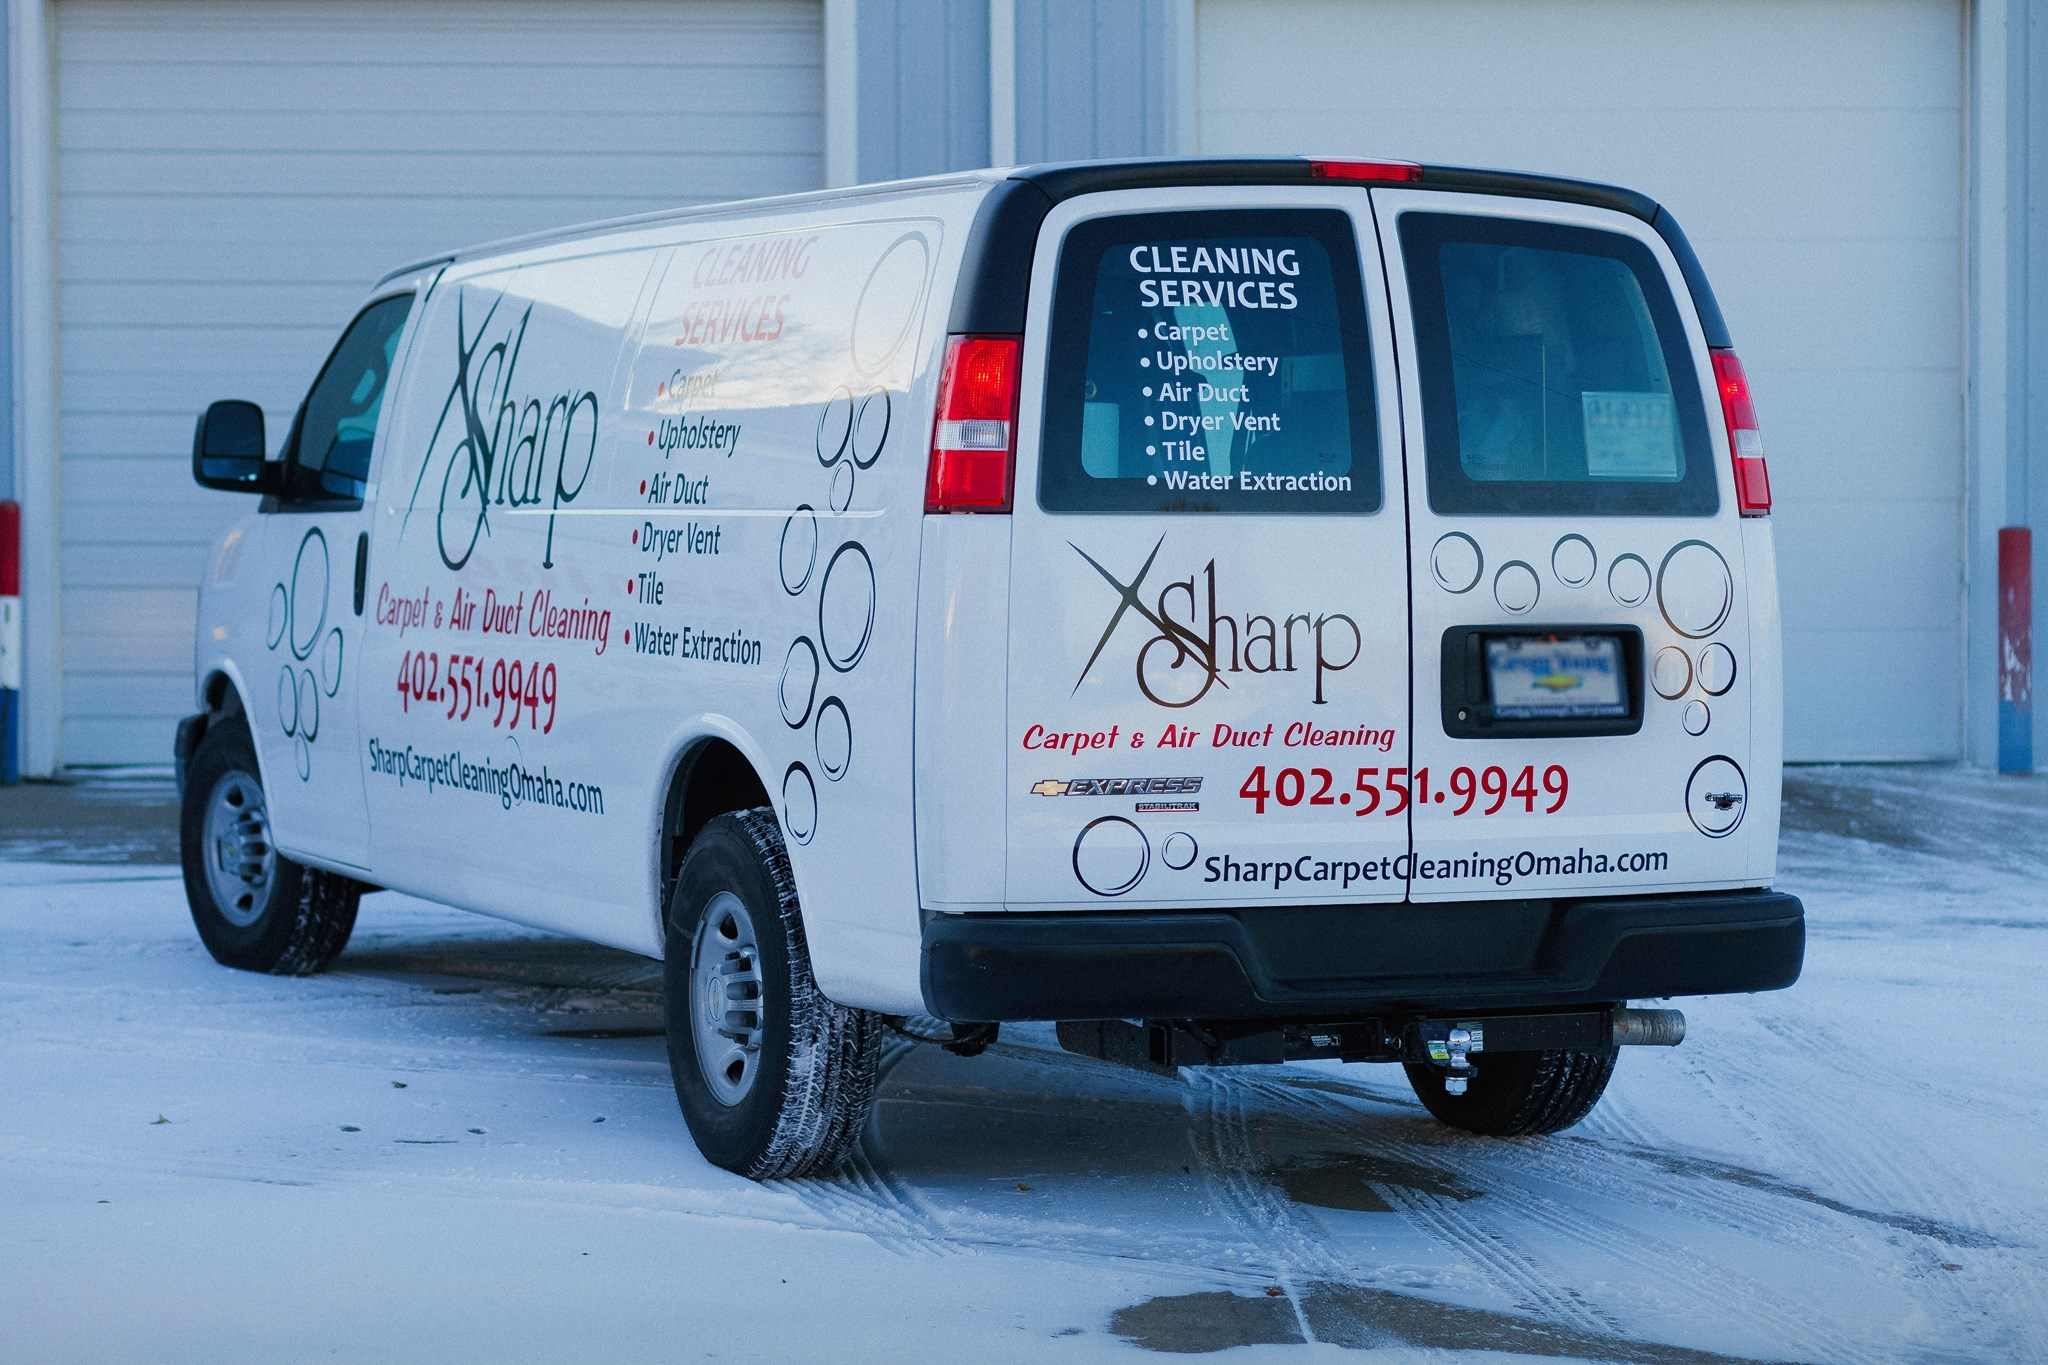 Sharp Carpet & Air Duct Cleaning image 5